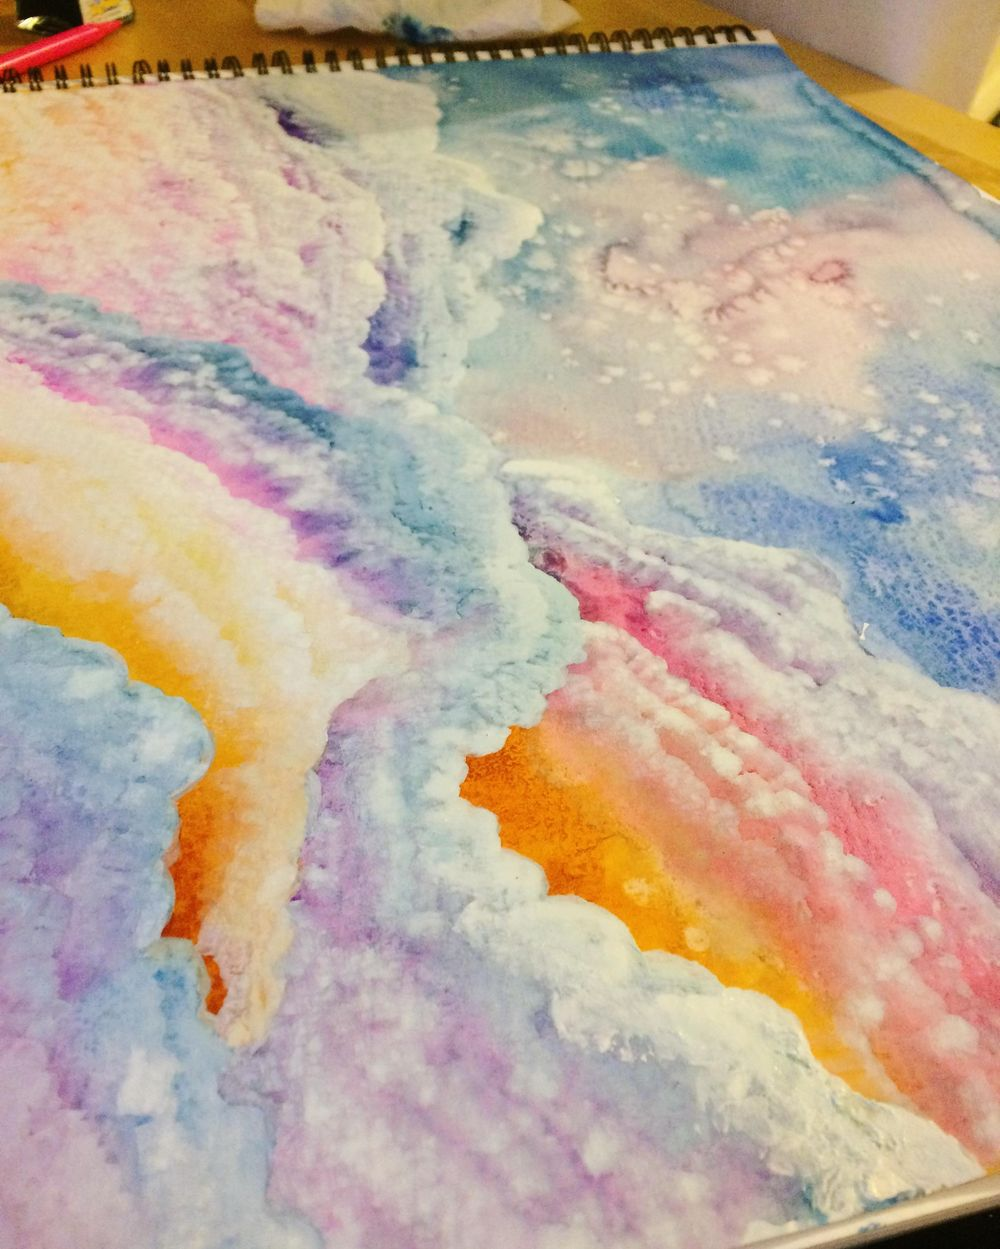 Watercolour & Mixed Media  - image 5 - student project